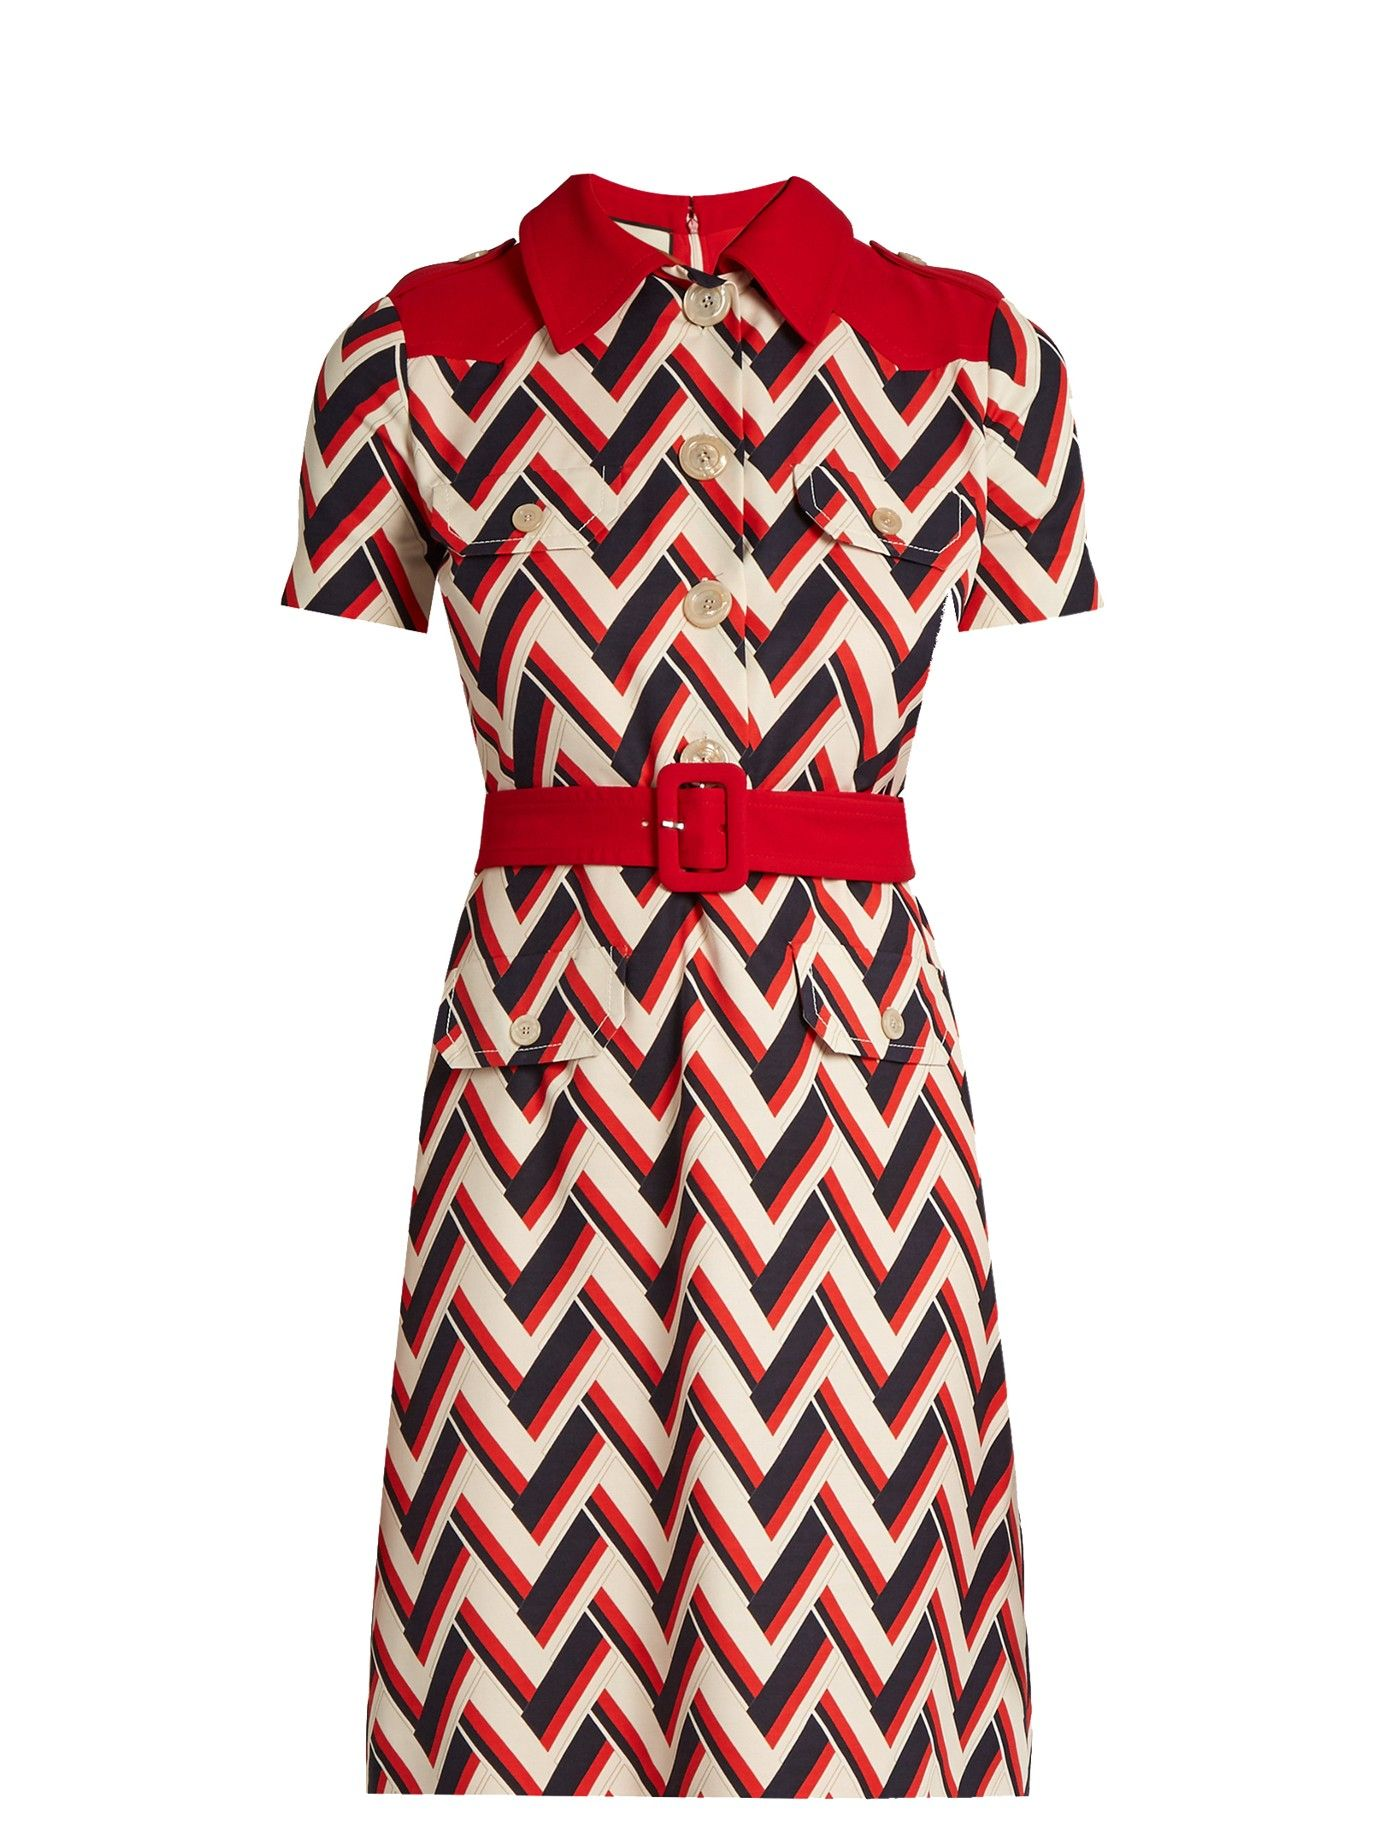 Chevron Print Wool And Silk Blend Dress Gucci